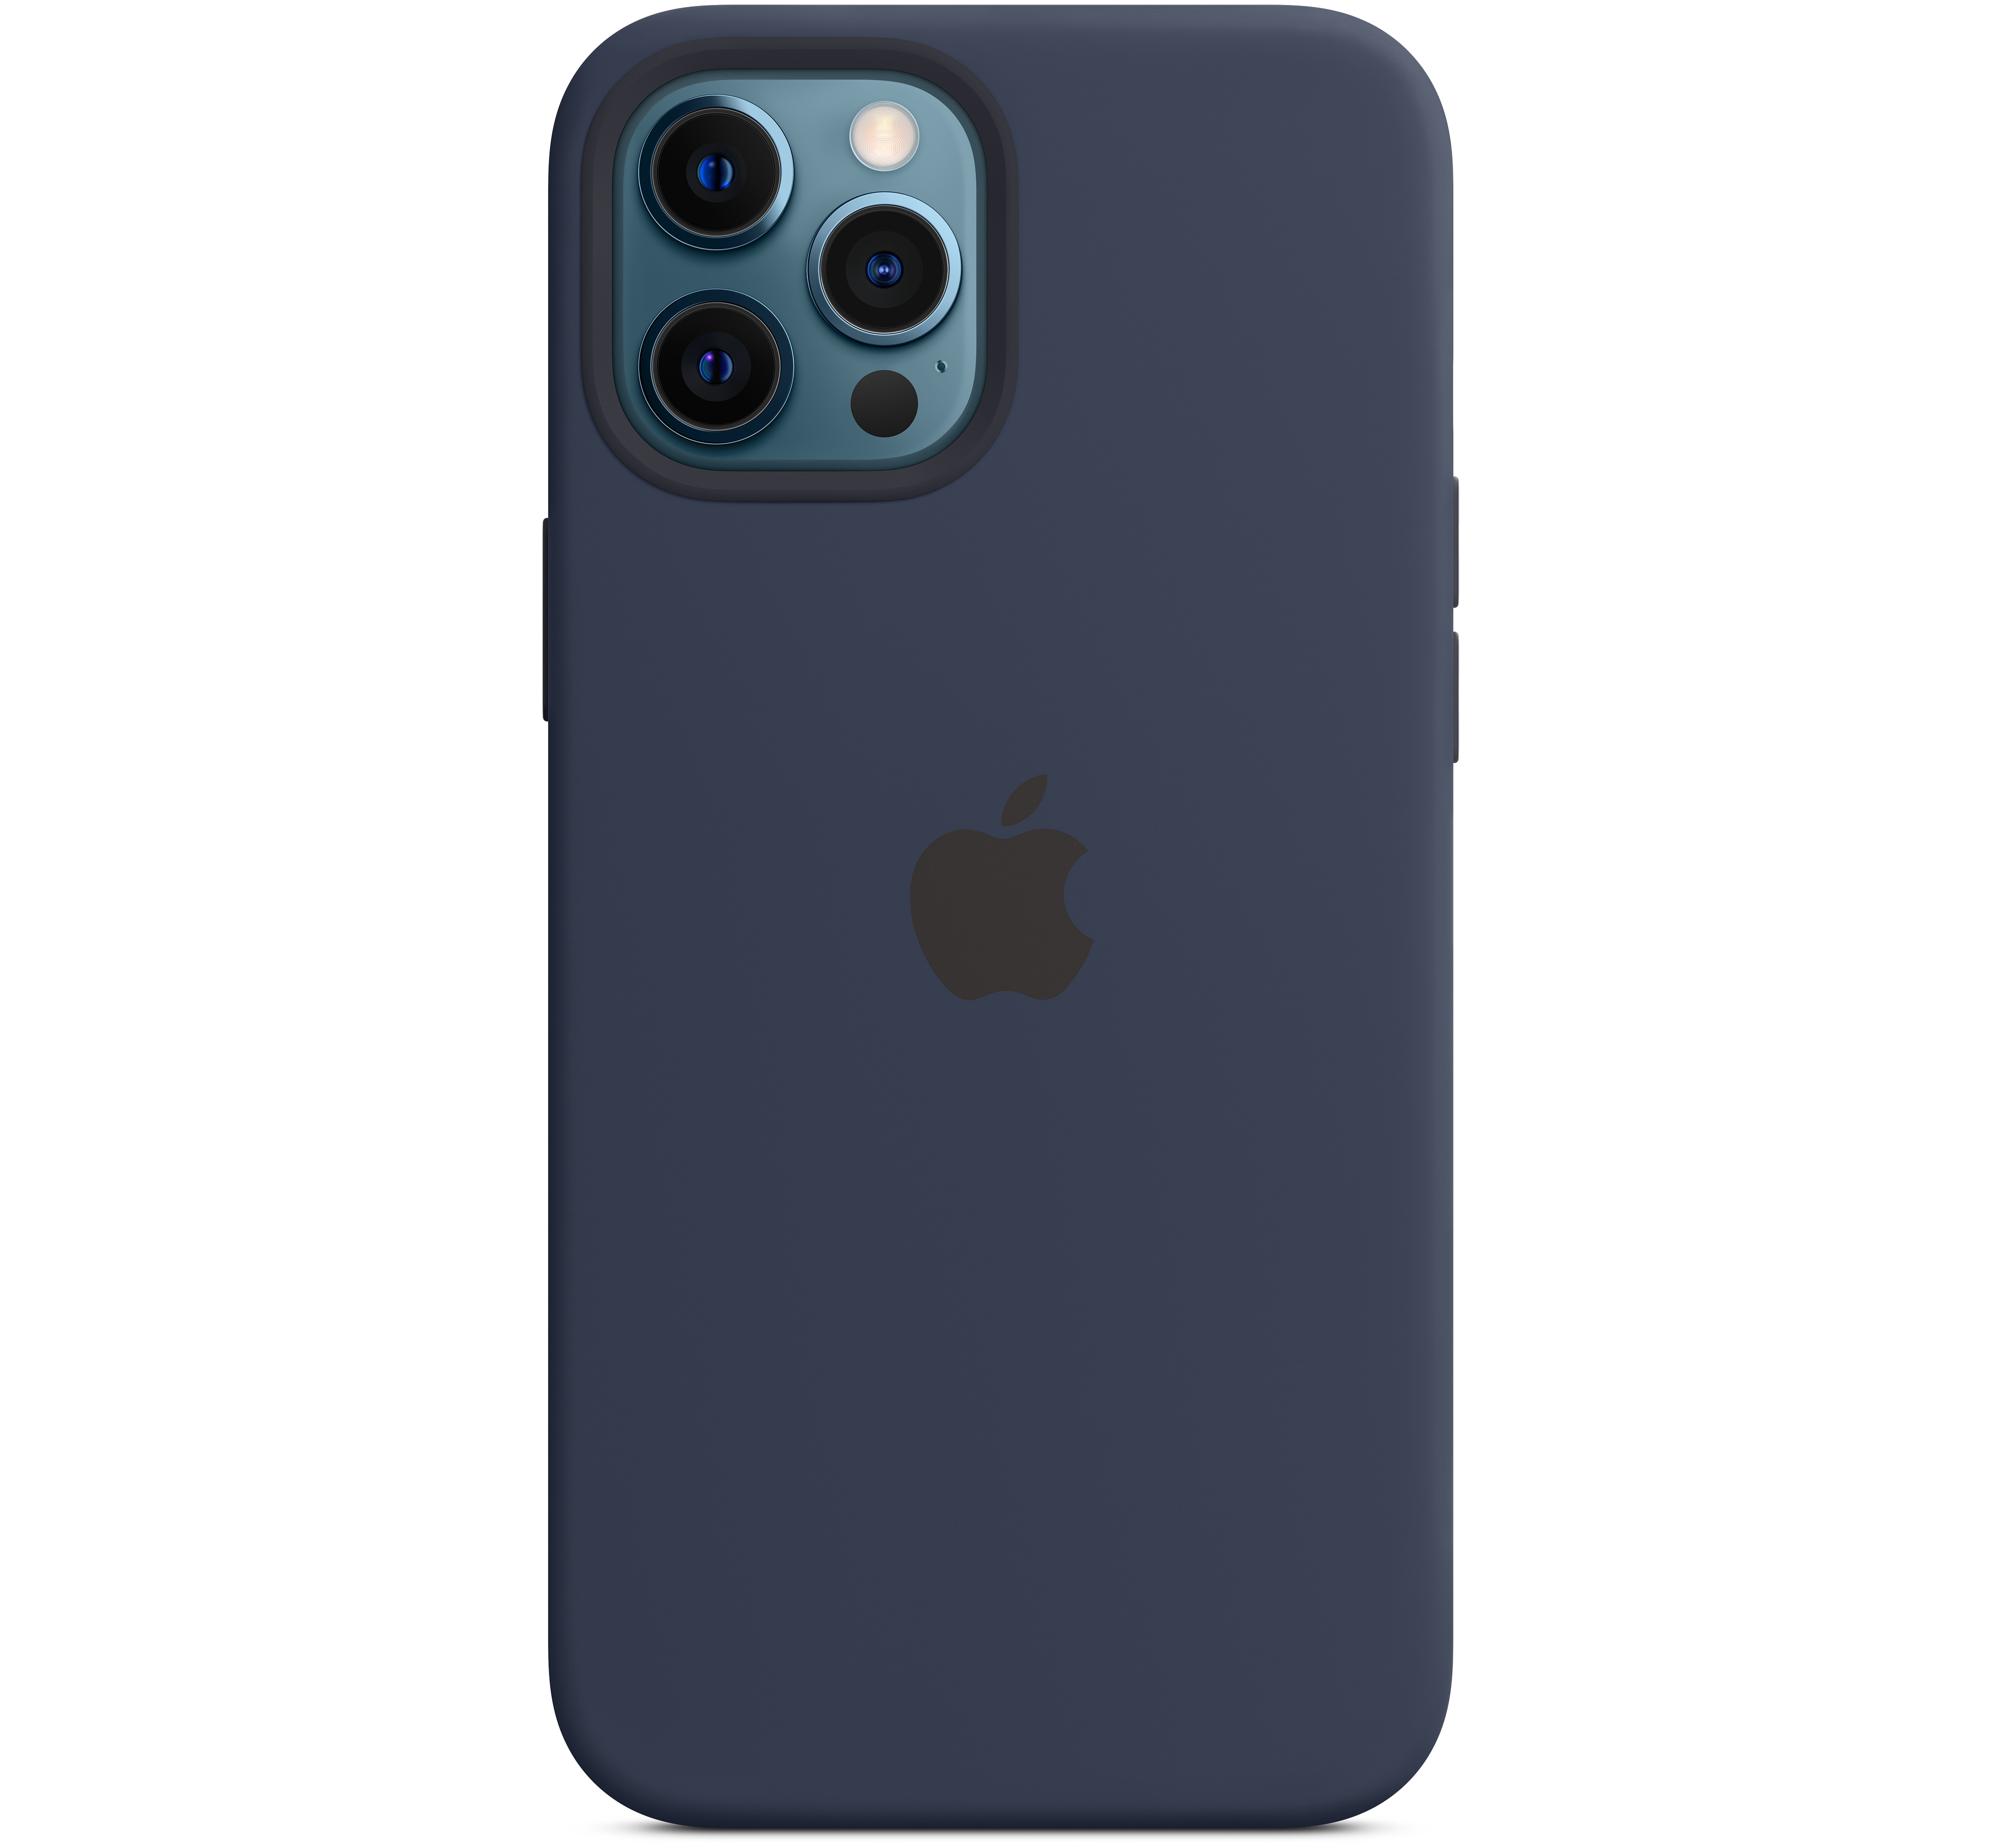 #Apple iPhone 12 Pro Max Silicone Case with MagSafe - Deep Navy